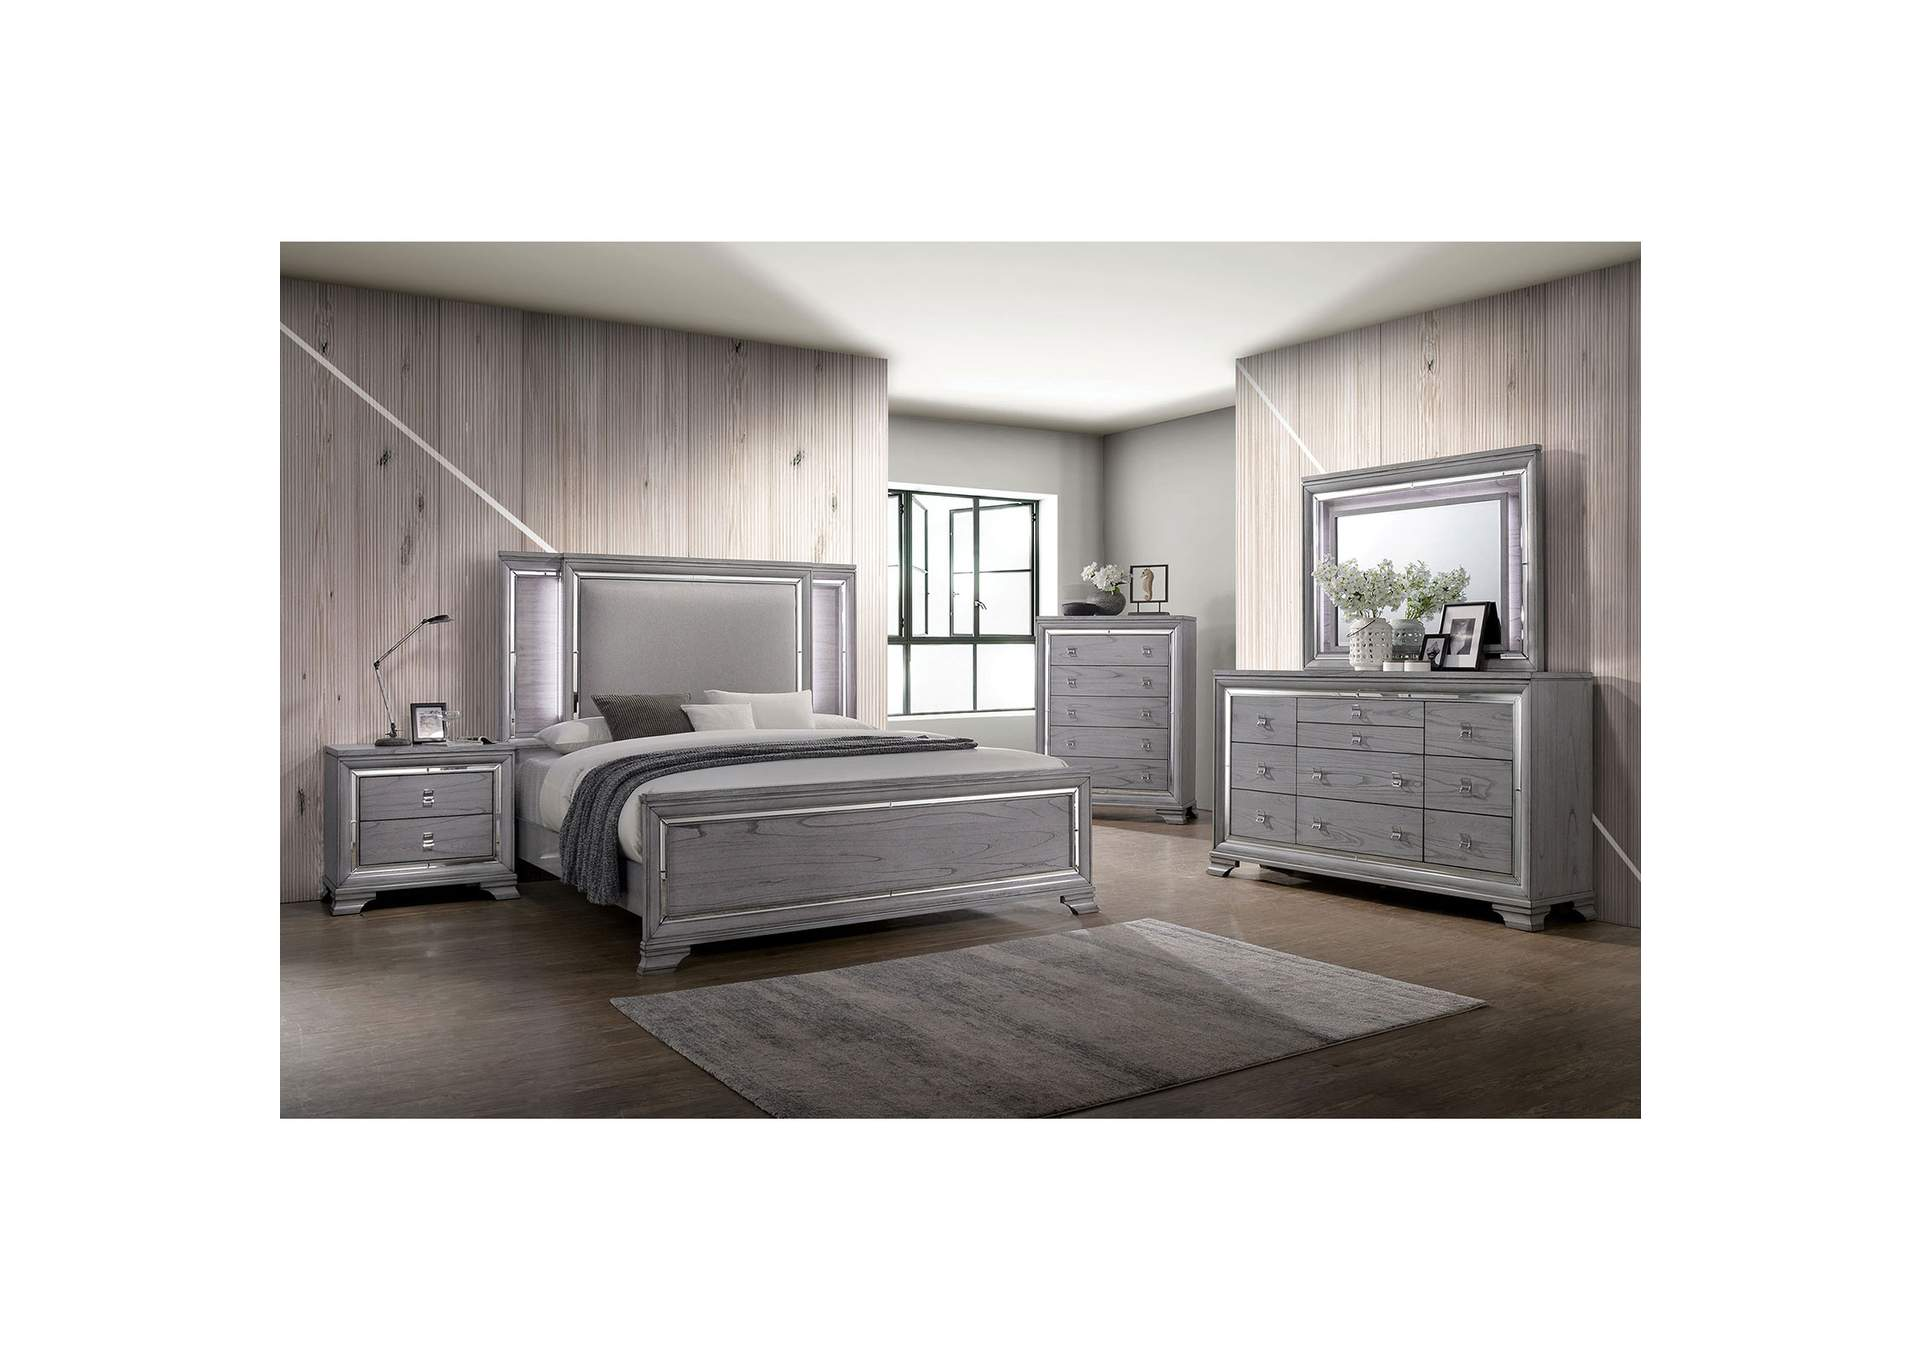 Alanis Light Gray Mirror/LED Trim Queen Panel Bed w/Dresser and Mirror,Furniture of America